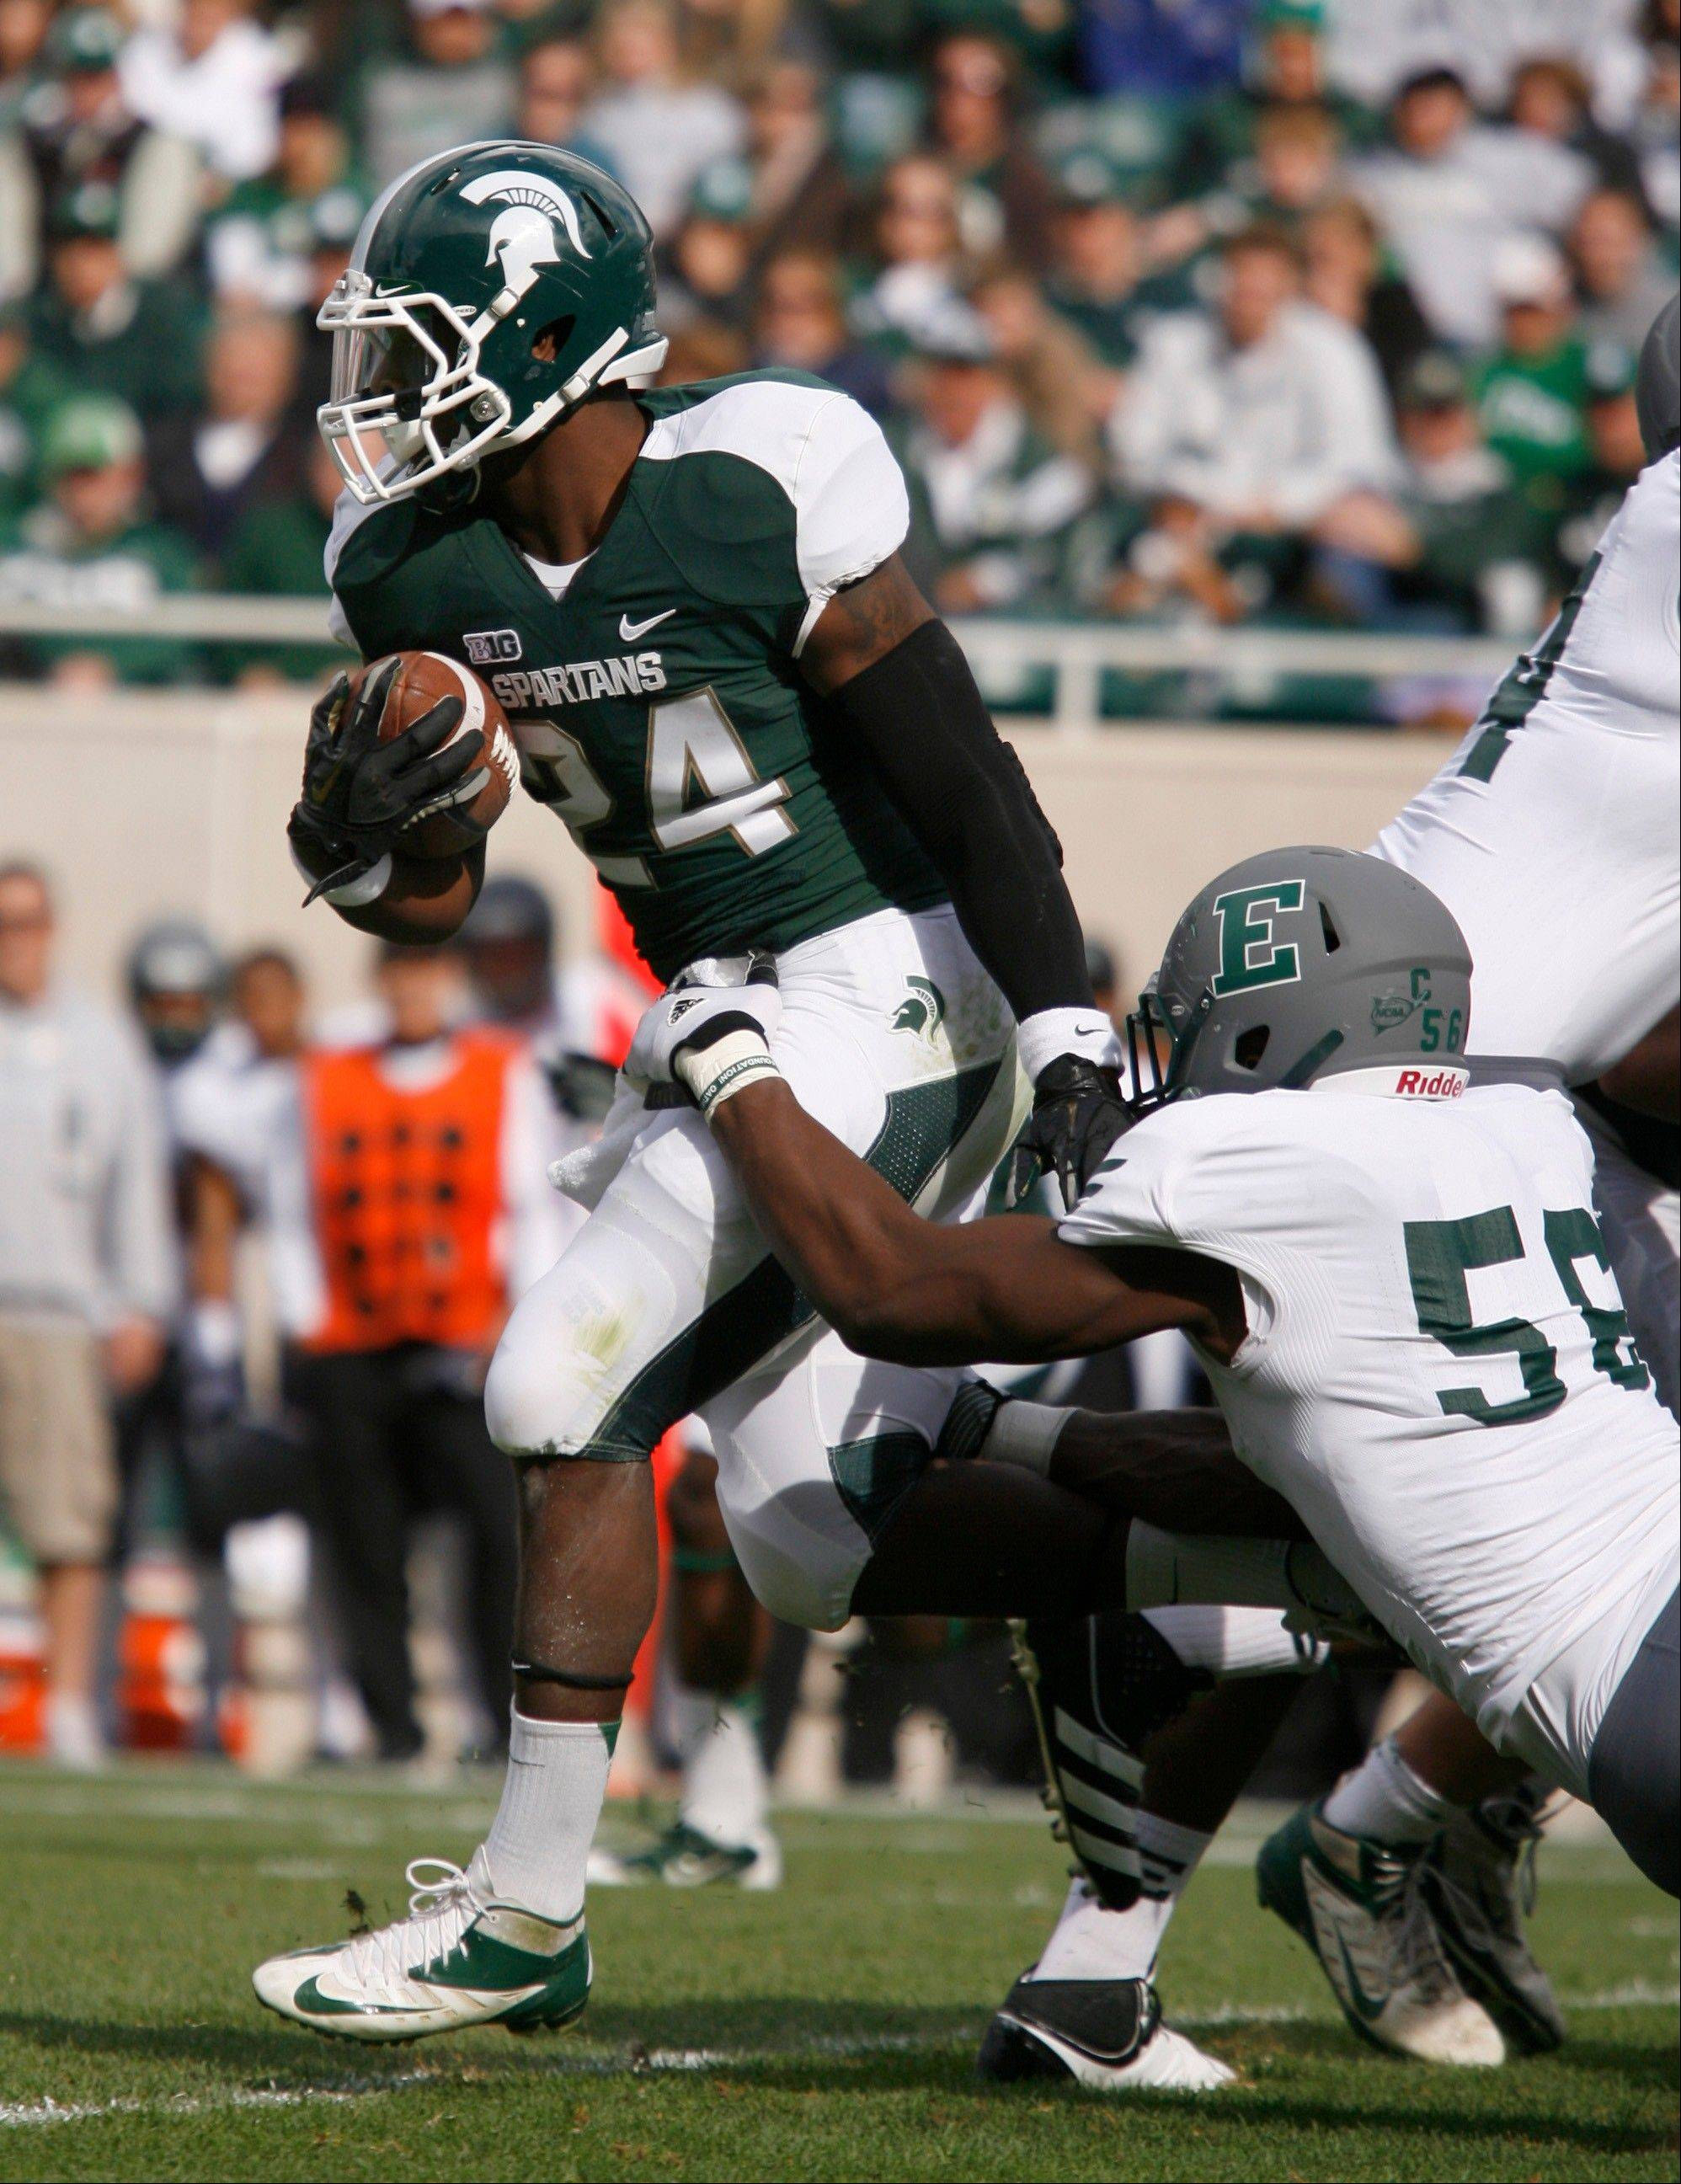 Michigan State's Le'Veon Bell, left, escapes the grasp of Eastern Michigan's Andy Mulumba during the first quarter Saturday in East Lansing, Mich.